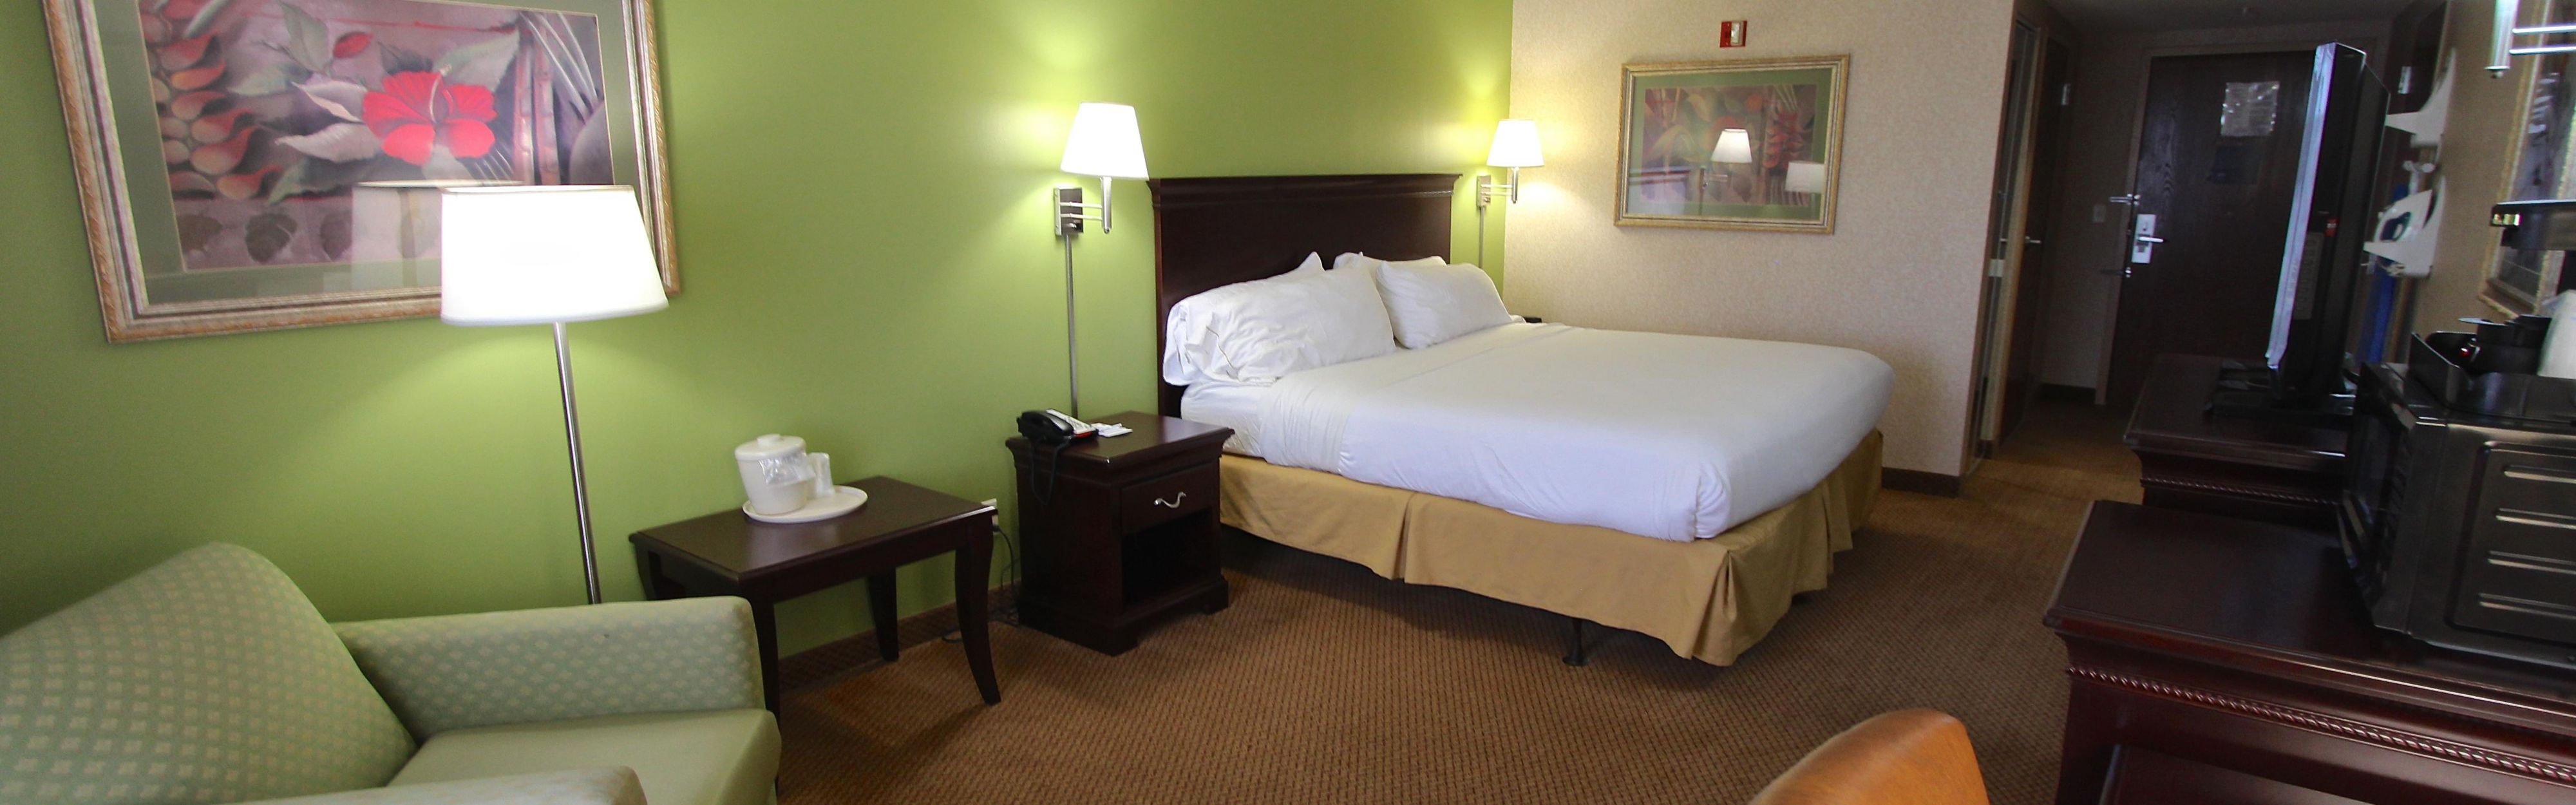 Holiday Inn Express & Suites Findlay image 1